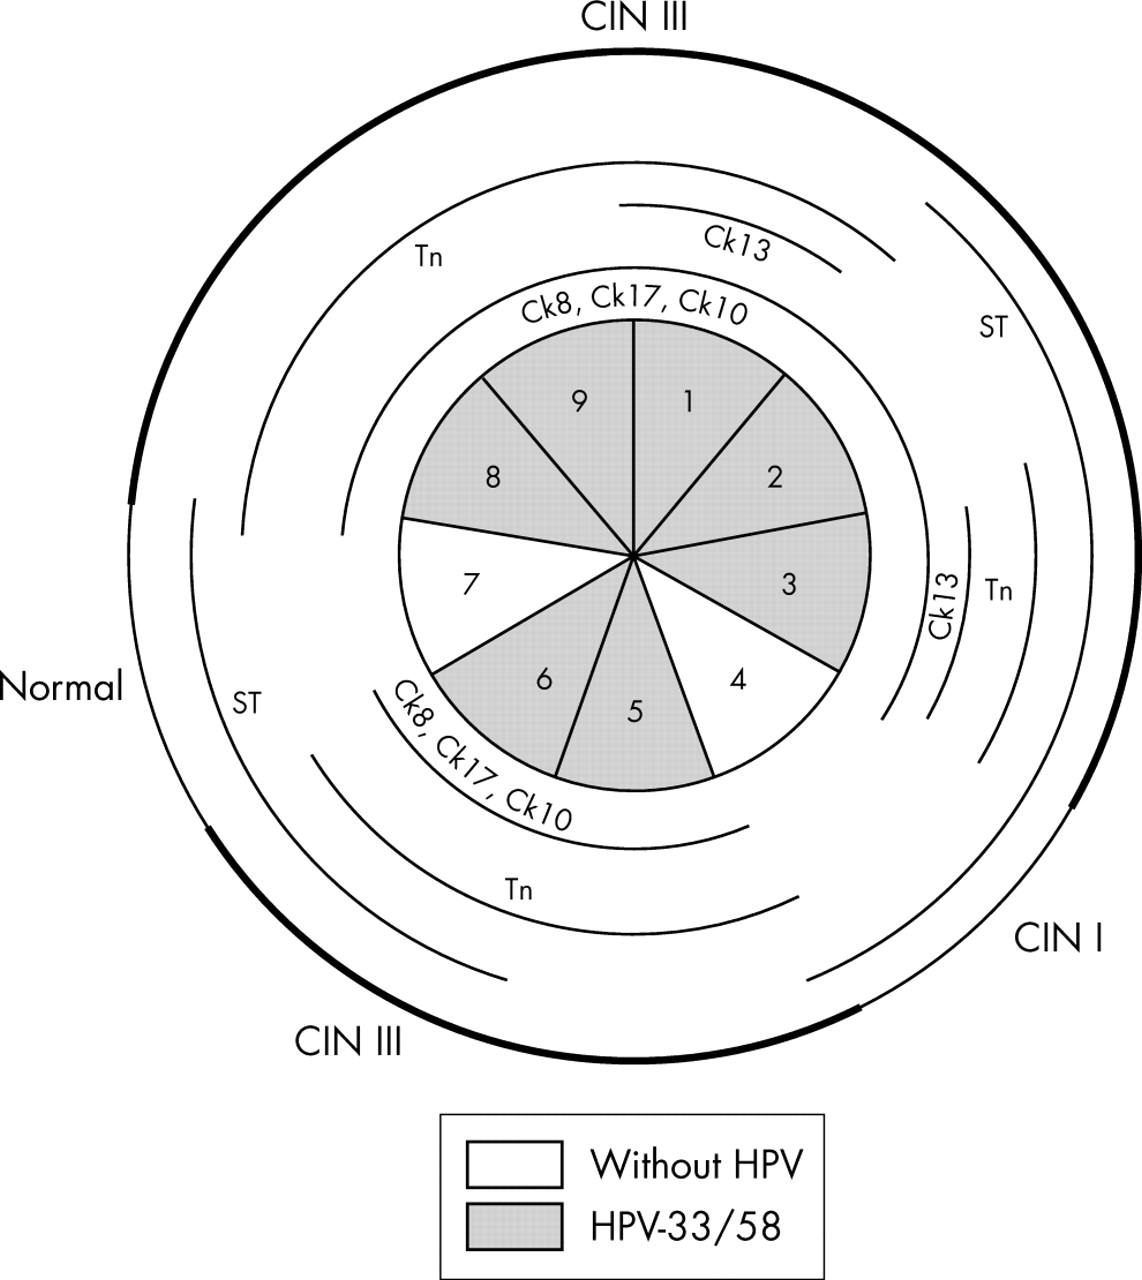 Distribution of HPV infection and tumour markers in cervical ...